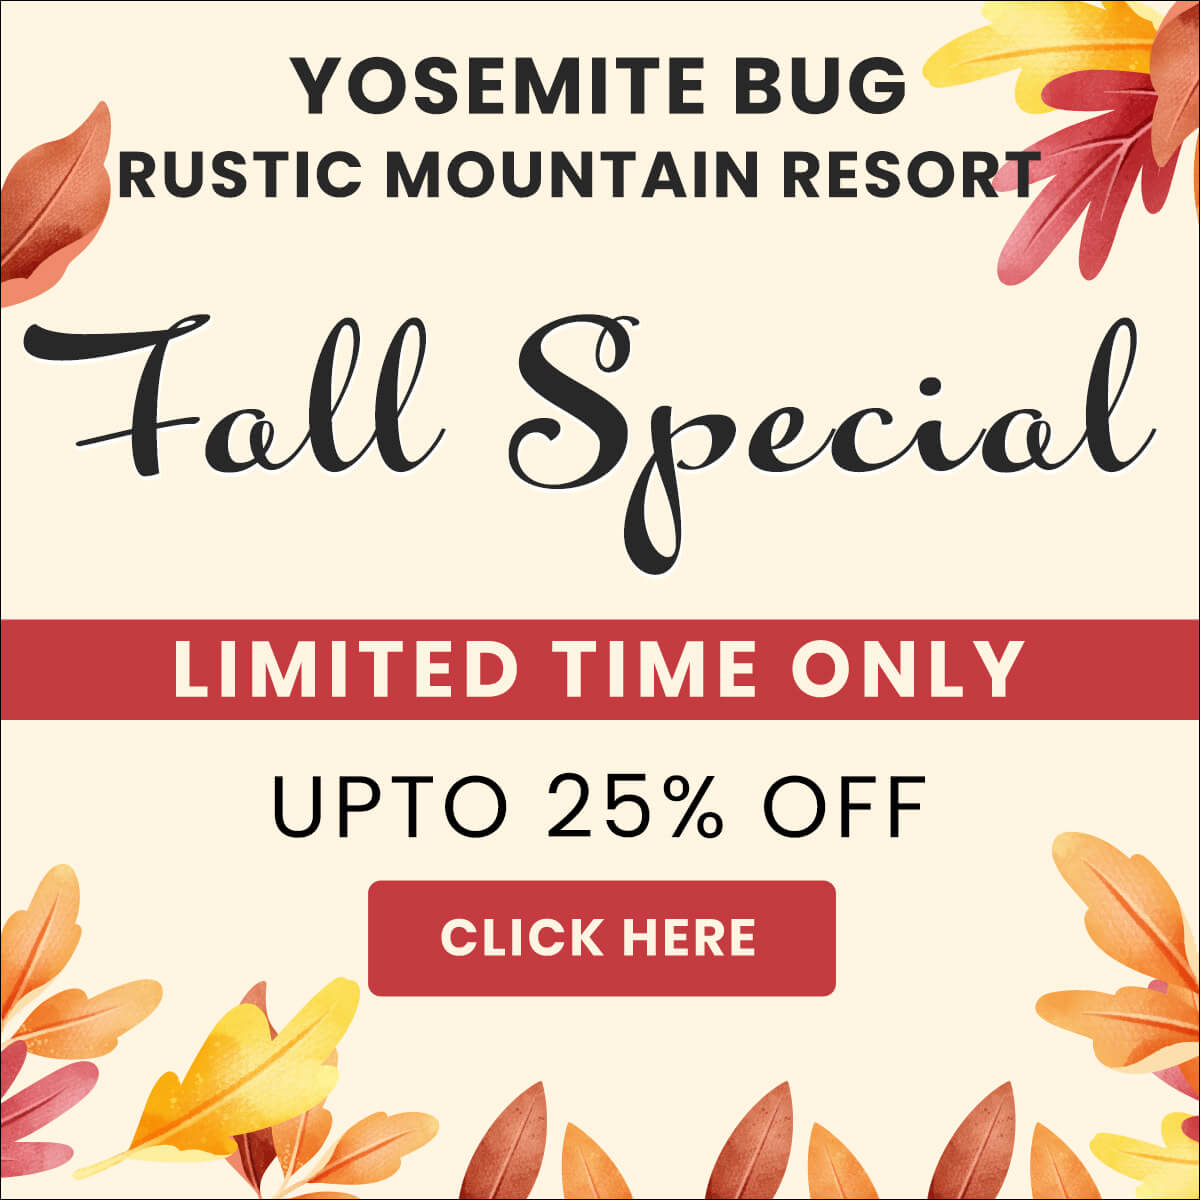 Fall Special: 25% off to ALL customers!